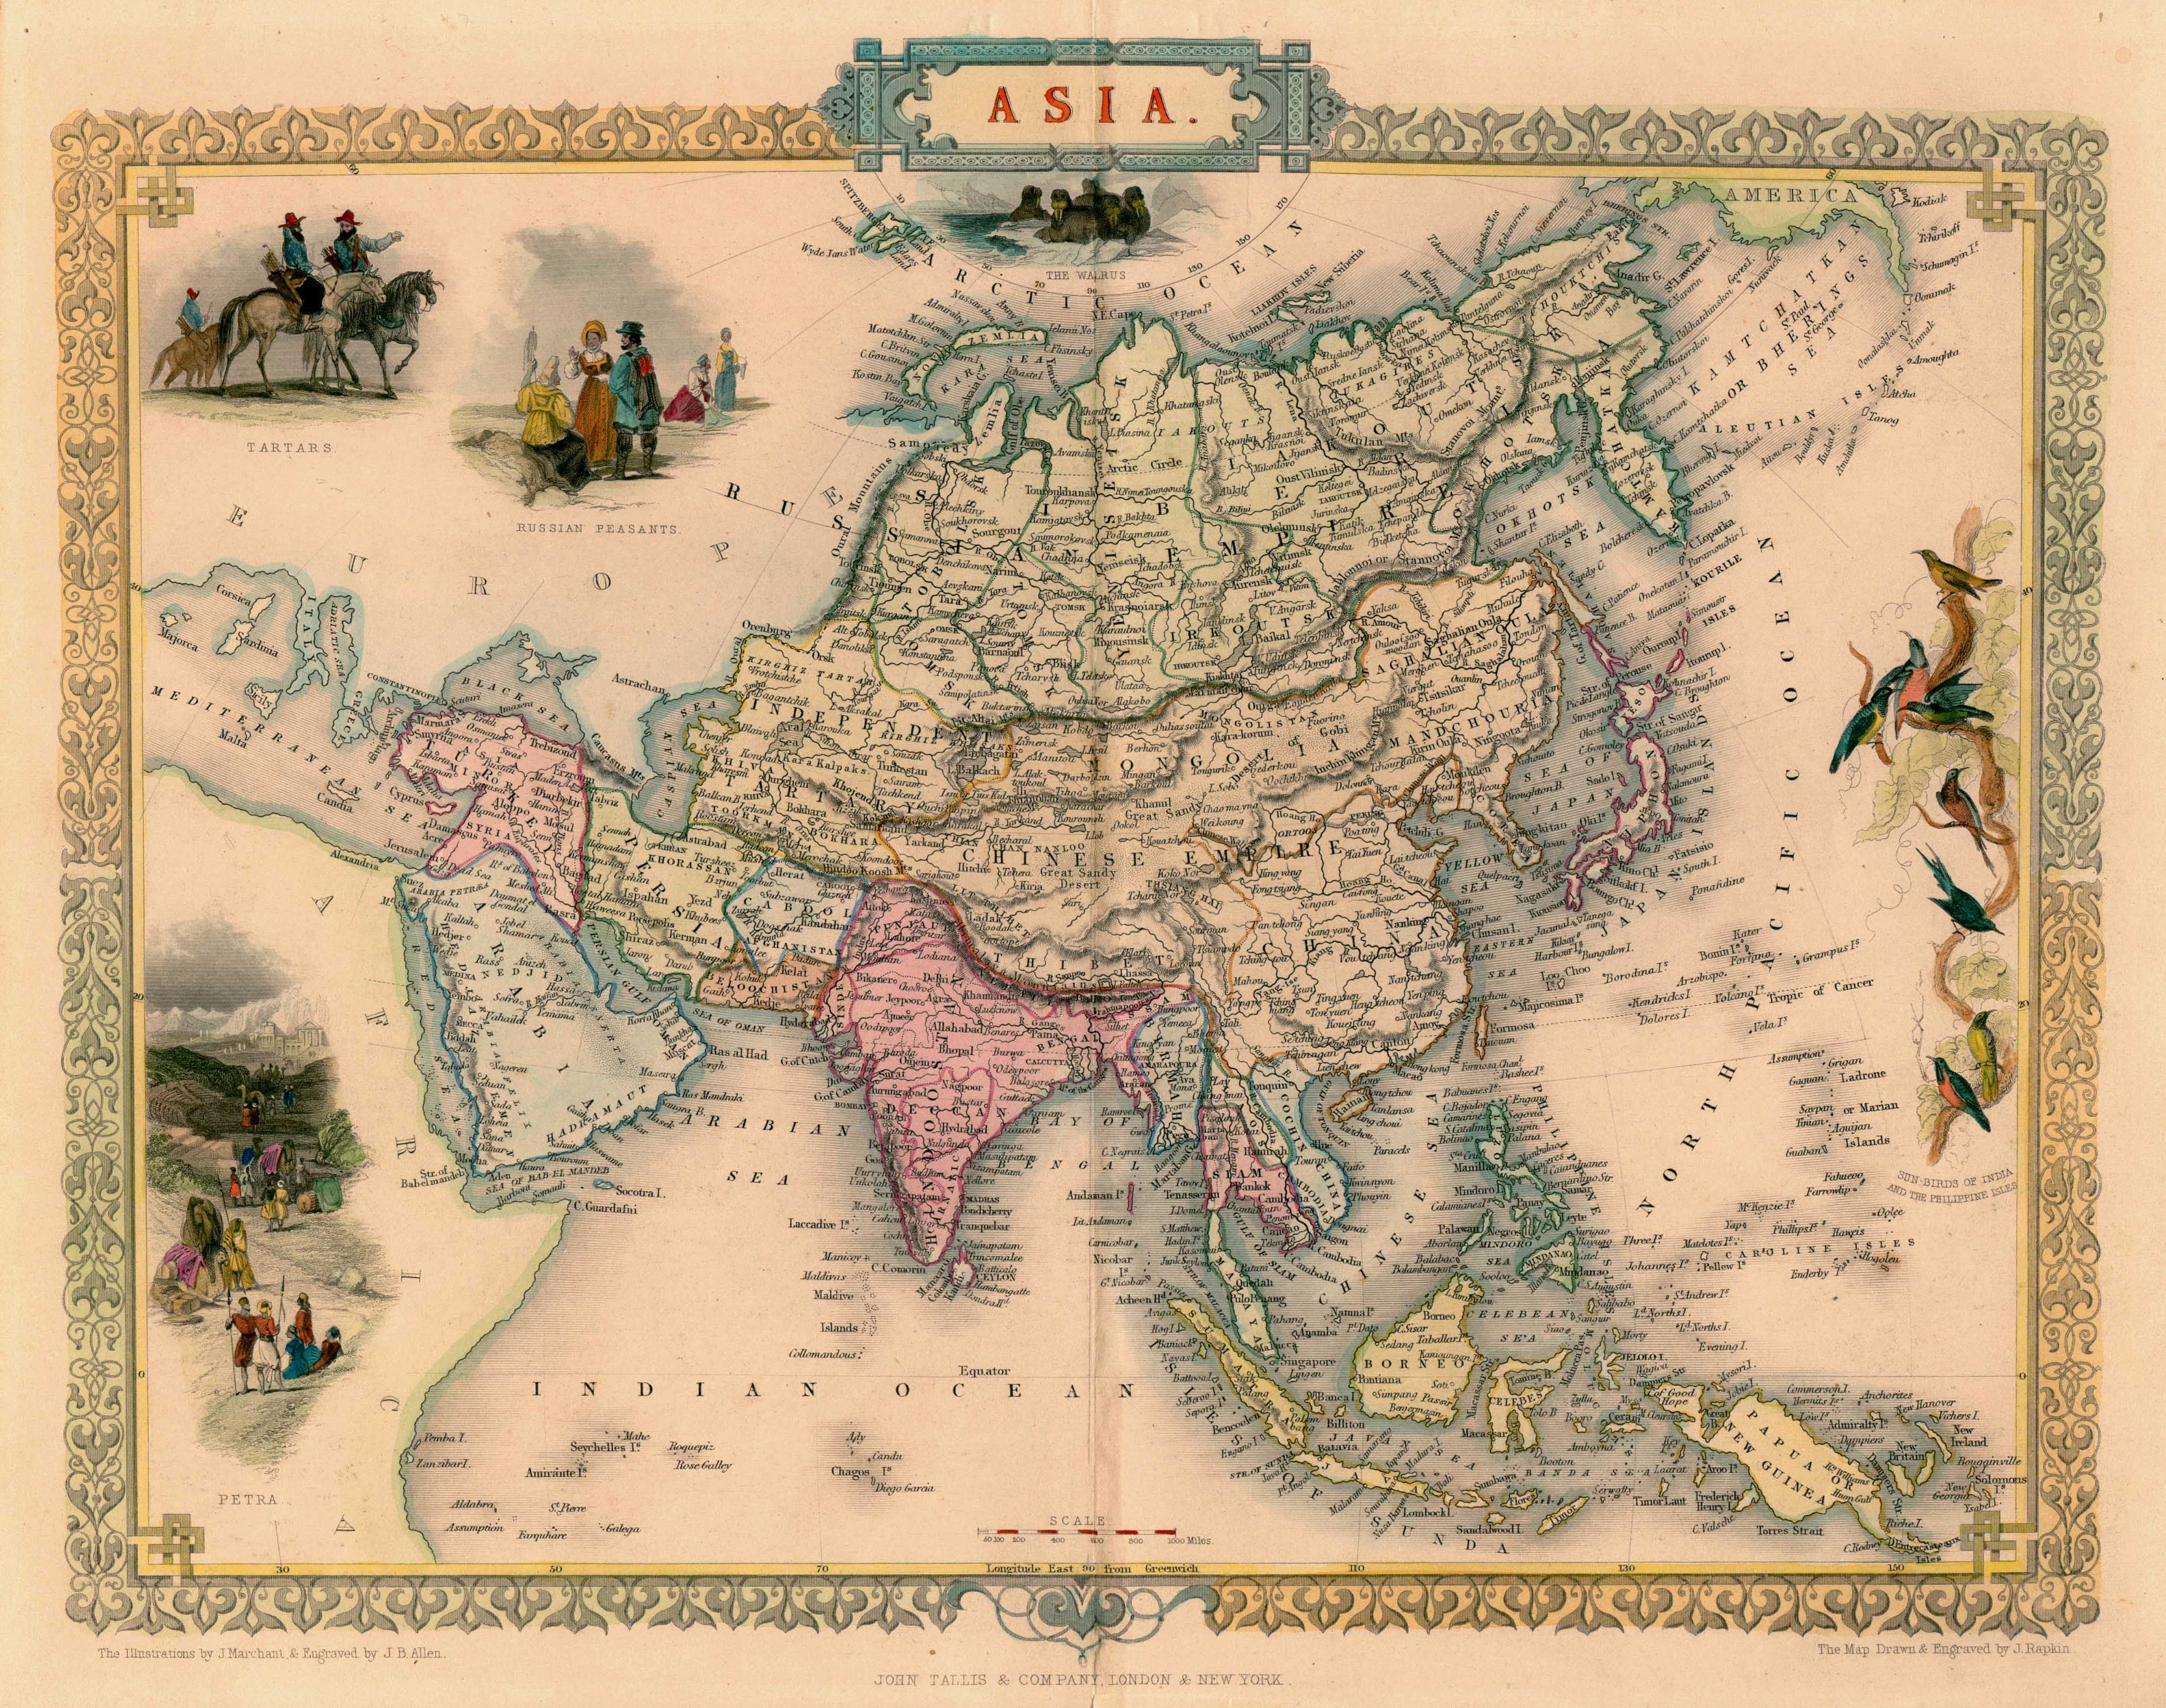 Antique map of asia by tallis 1851 map asia world pinterest antique map of asia by tallis 1851 map asia publicscrutiny Gallery